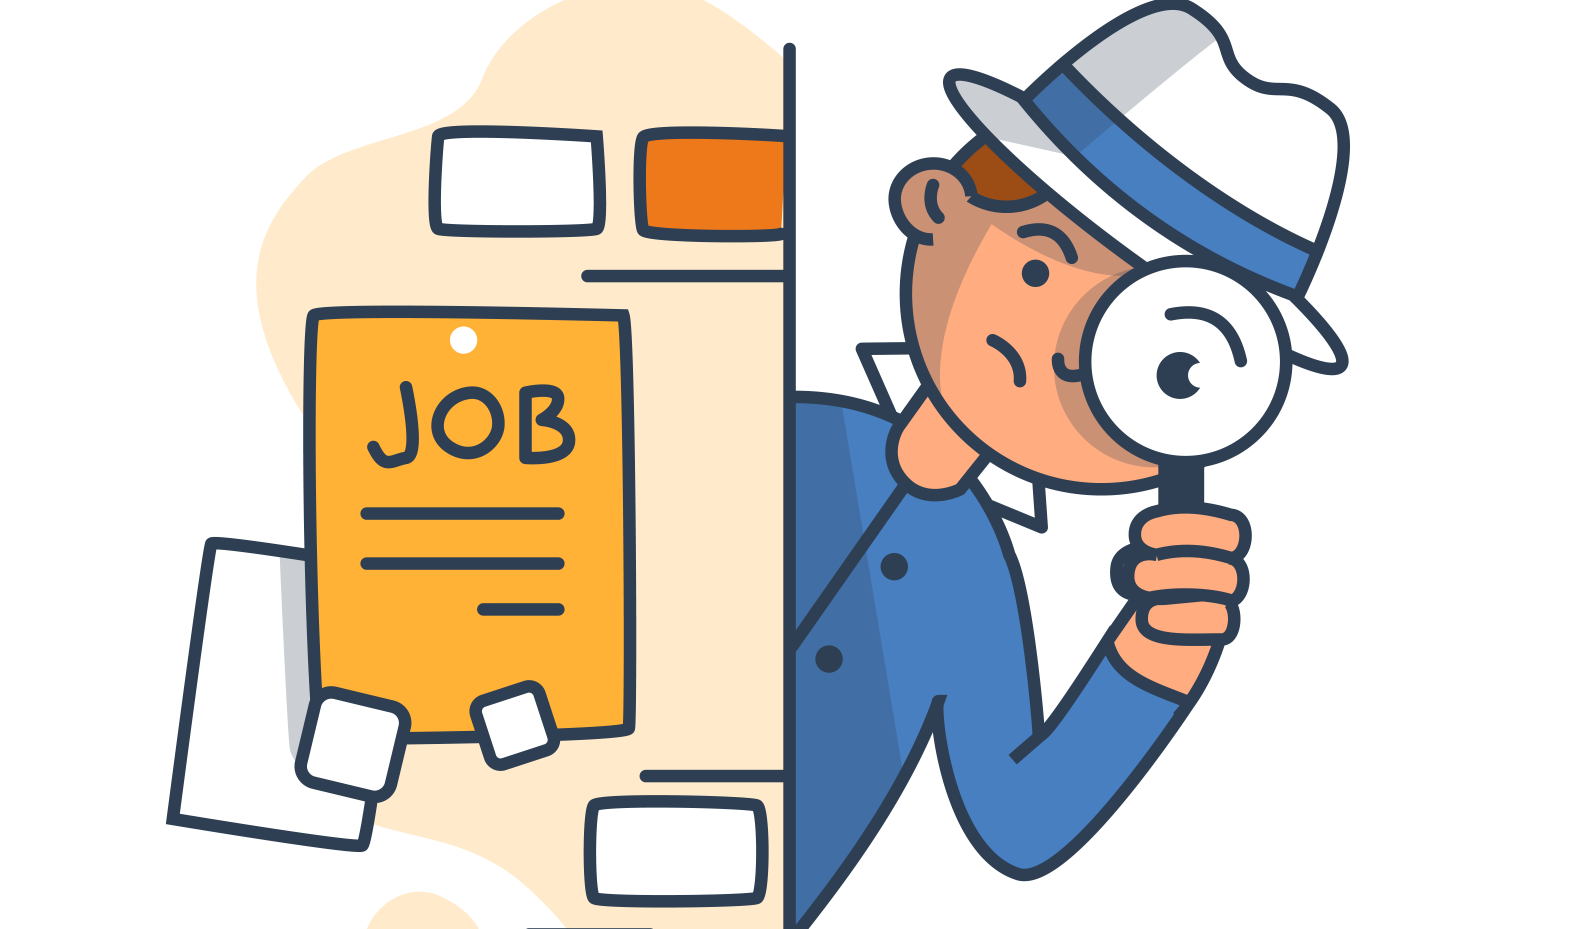 Jobs clipart professional job. Find a remote product